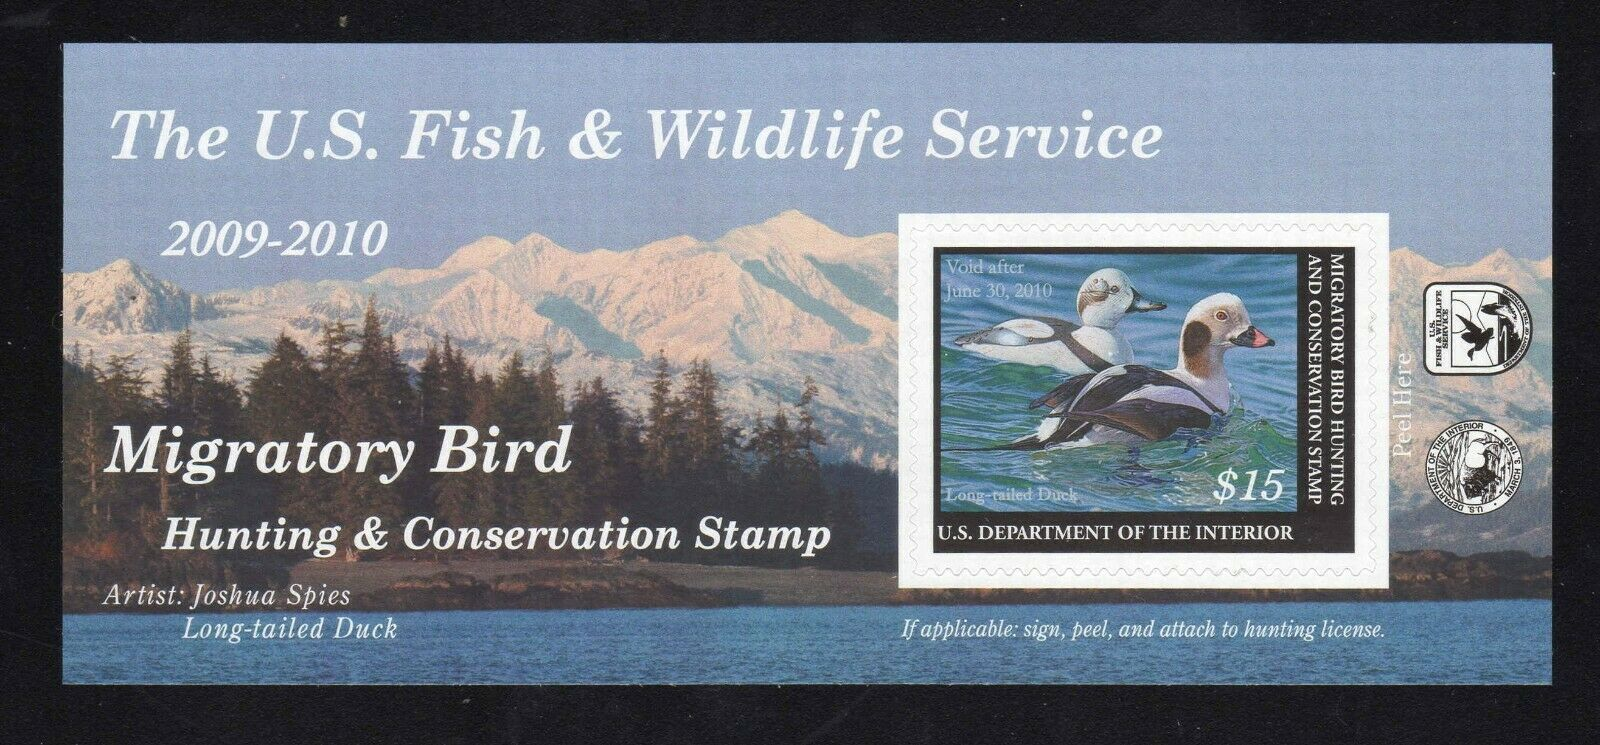 2009-2010 Federal Duck Stamp